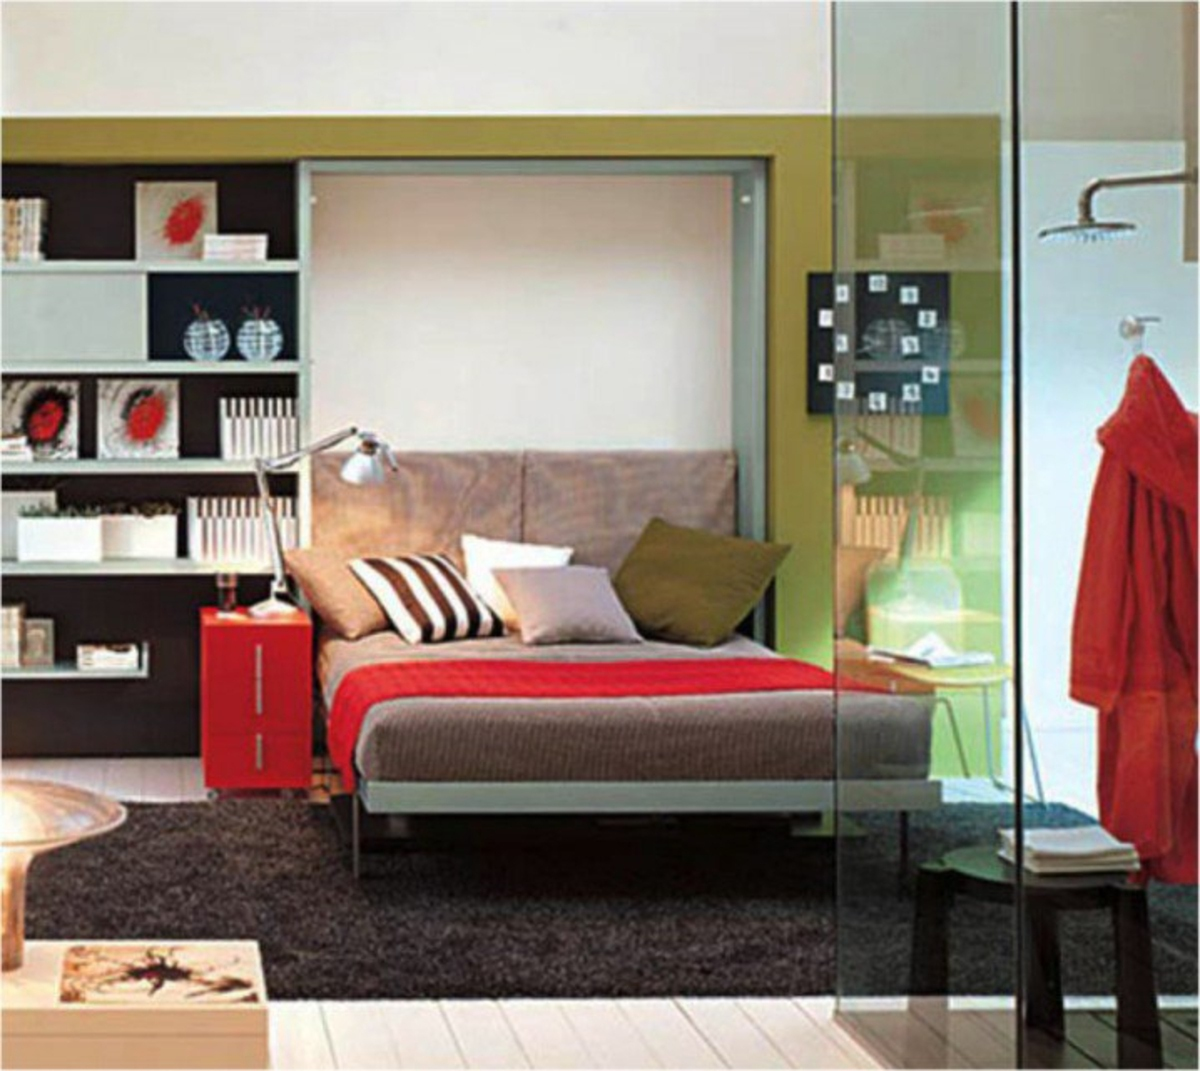 Wall-bed-desk-for-space-saving-room-design-1280x11421-718x641 (1)